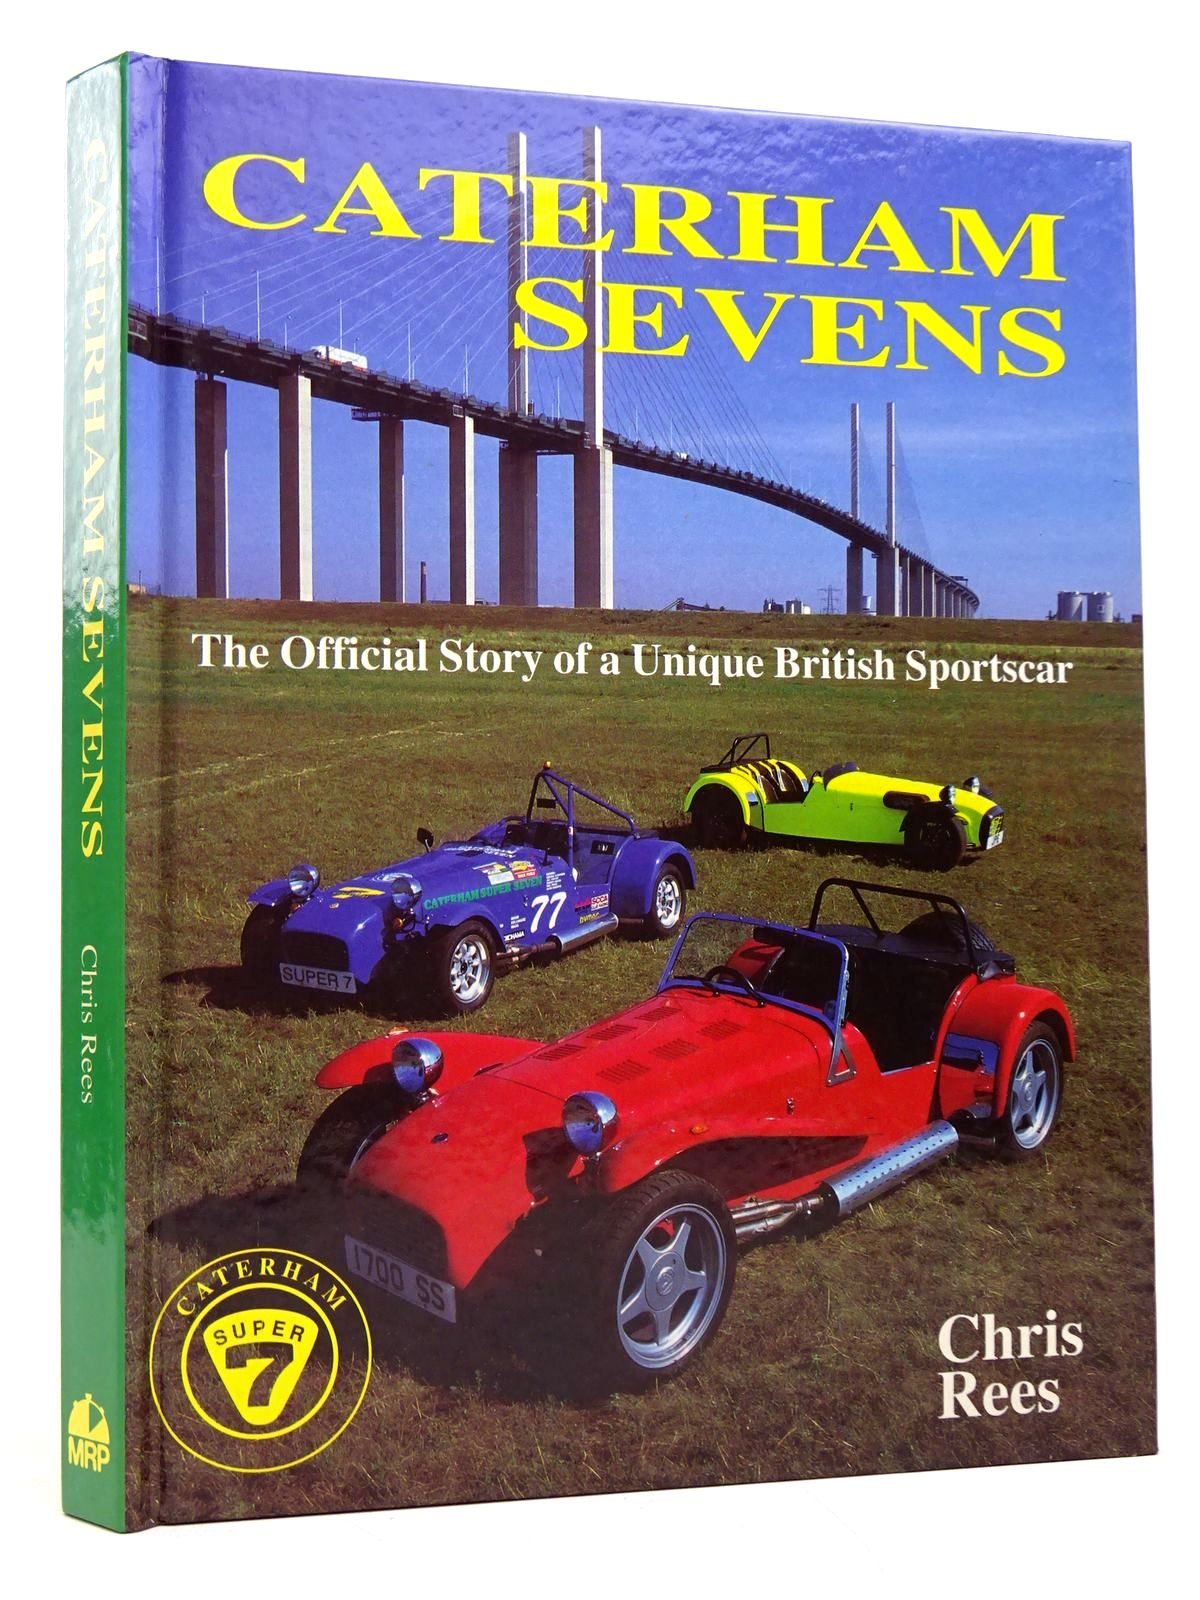 Photo of CATERHAM SEVENS written by Rees, Chris published by Motor Racing Publications Ltd. (STOCK CODE: 1817865)  for sale by Stella & Rose's Books